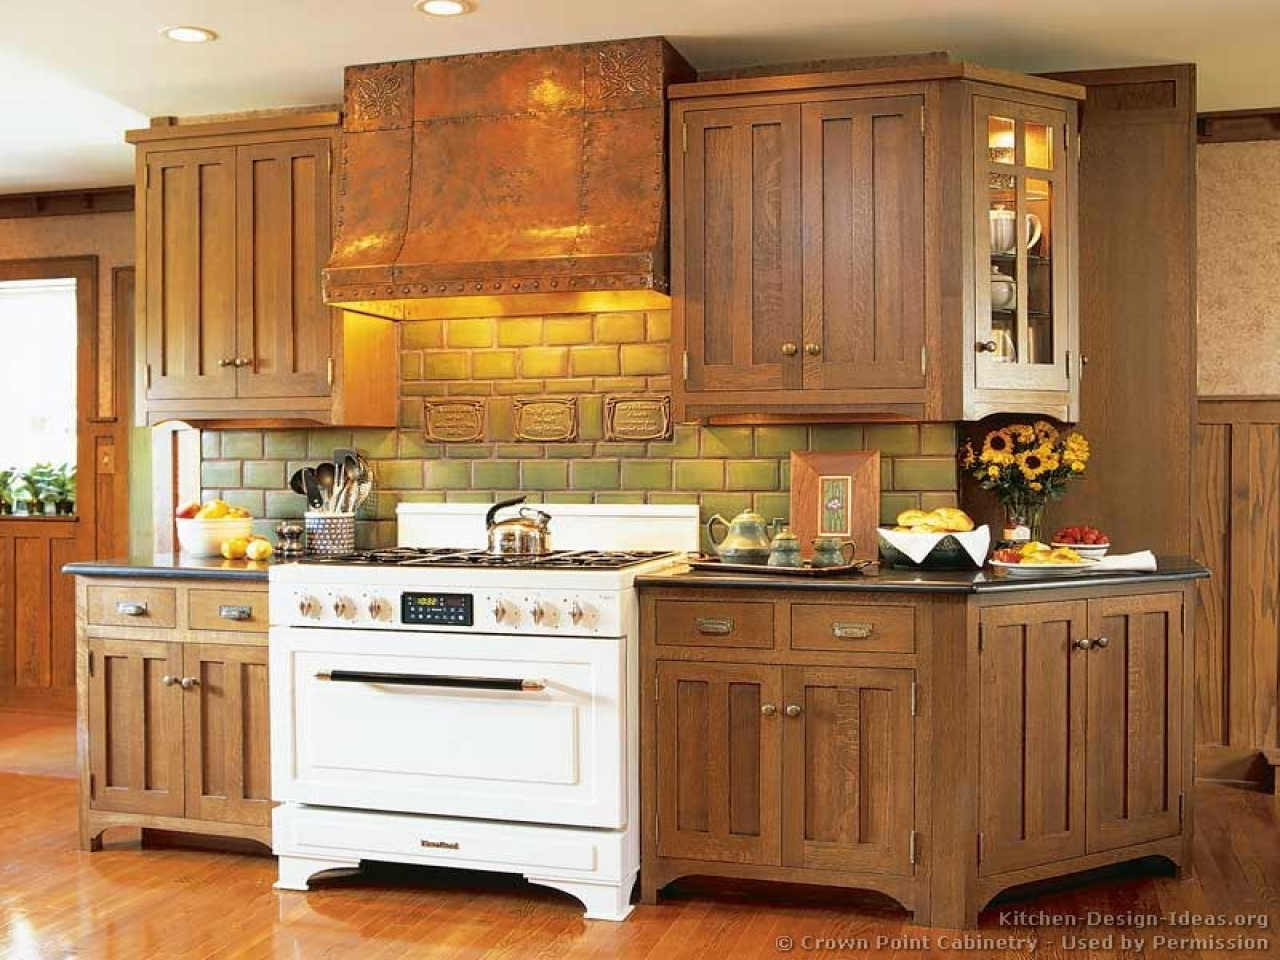 Craftsman Kitchen Backsplash Ideas Mission Style Kitchen Backsplash Idea Craftsman Designs